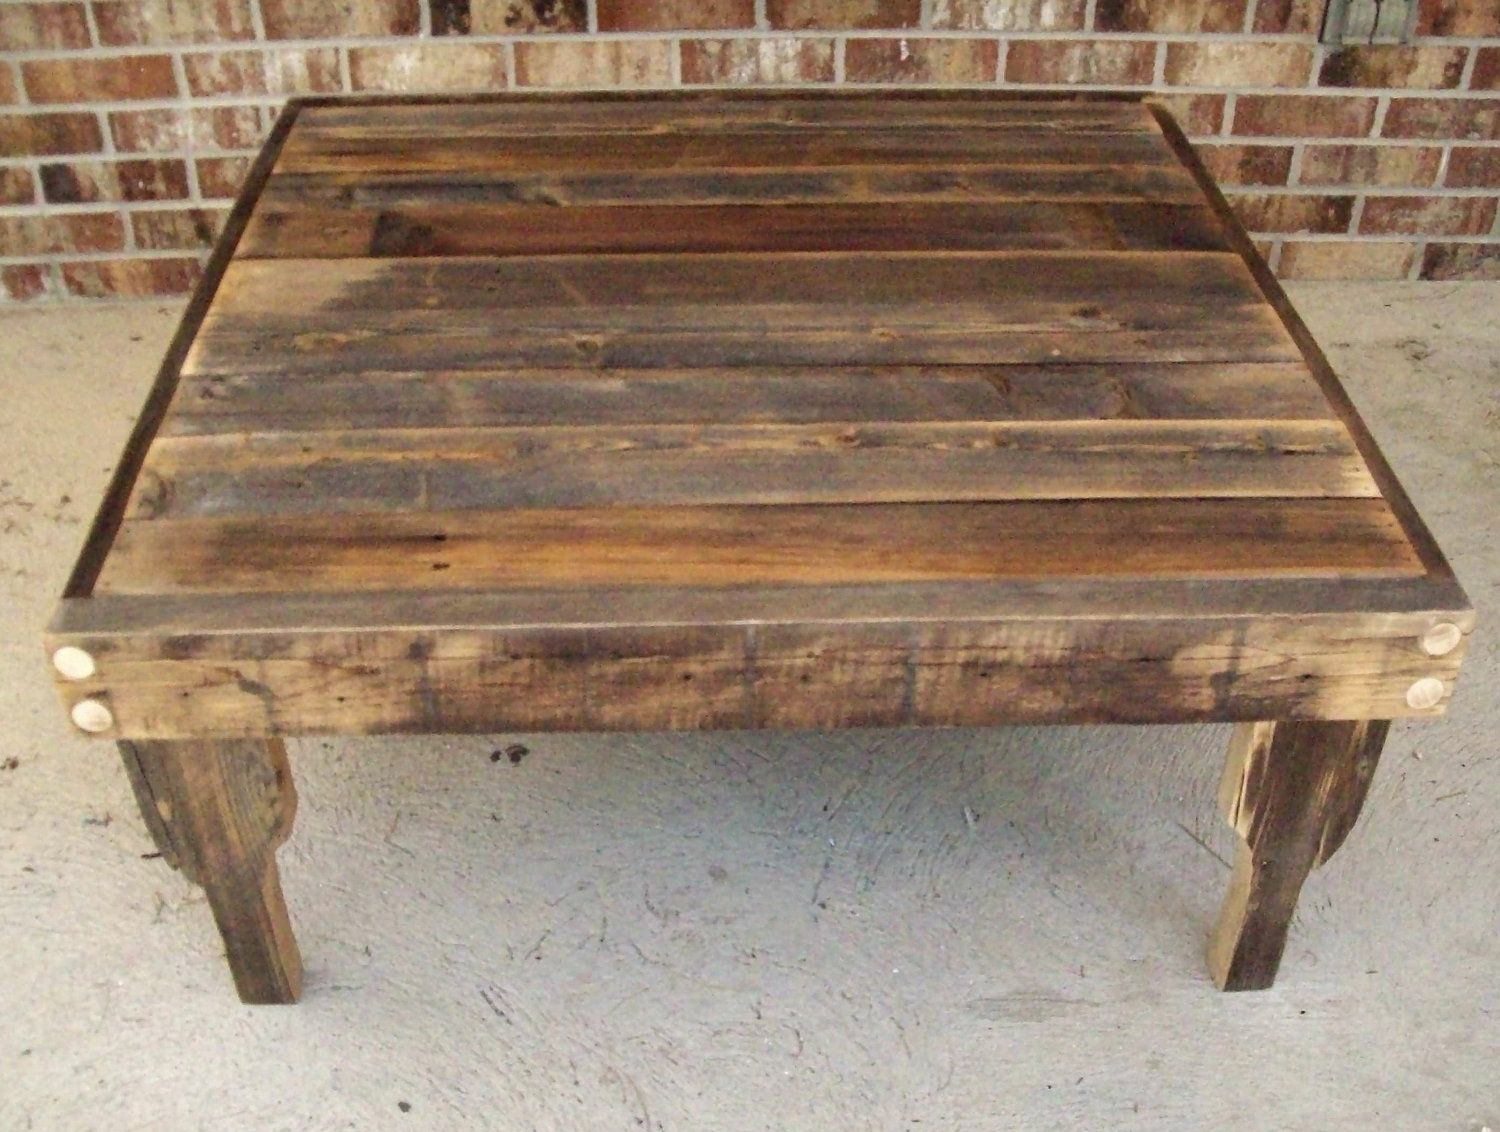 Large Natural Finish Square Reclaimed Fence Wood Coffee Table With Removable Legs 335 00 Via Etsy